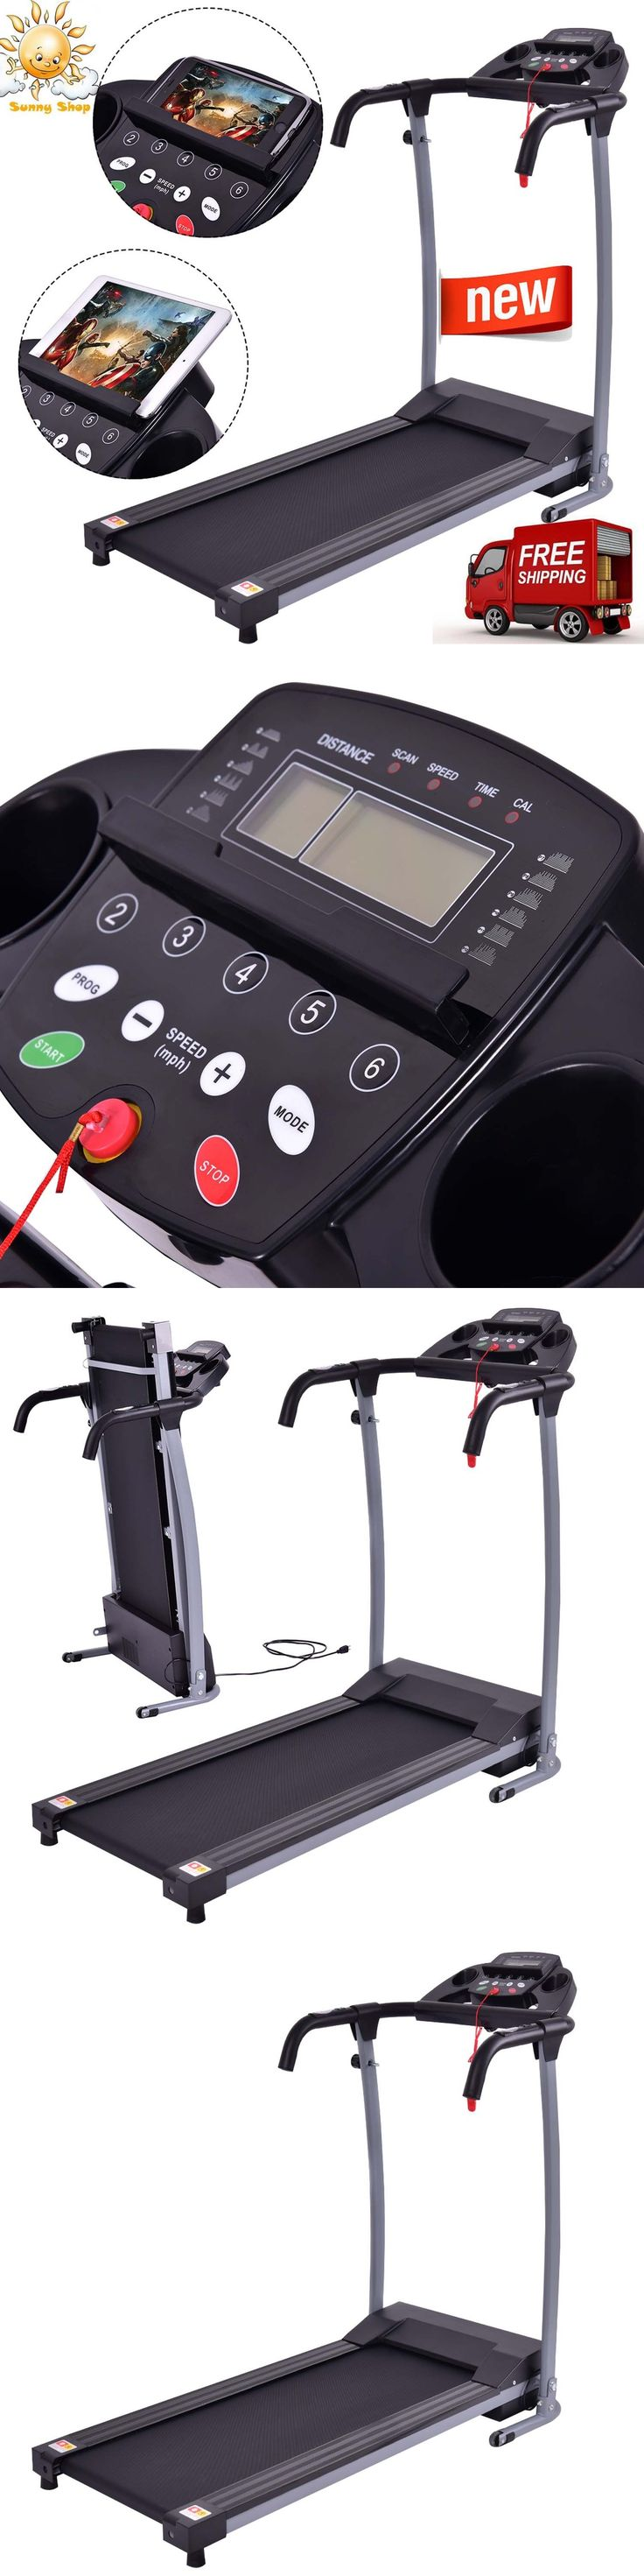 Treadmills 15280: 800W Folding Treadmill Electric Support Motorized Power Running Fitness Machine -> BUY IT NOW ONLY: $229.99 on eBay!